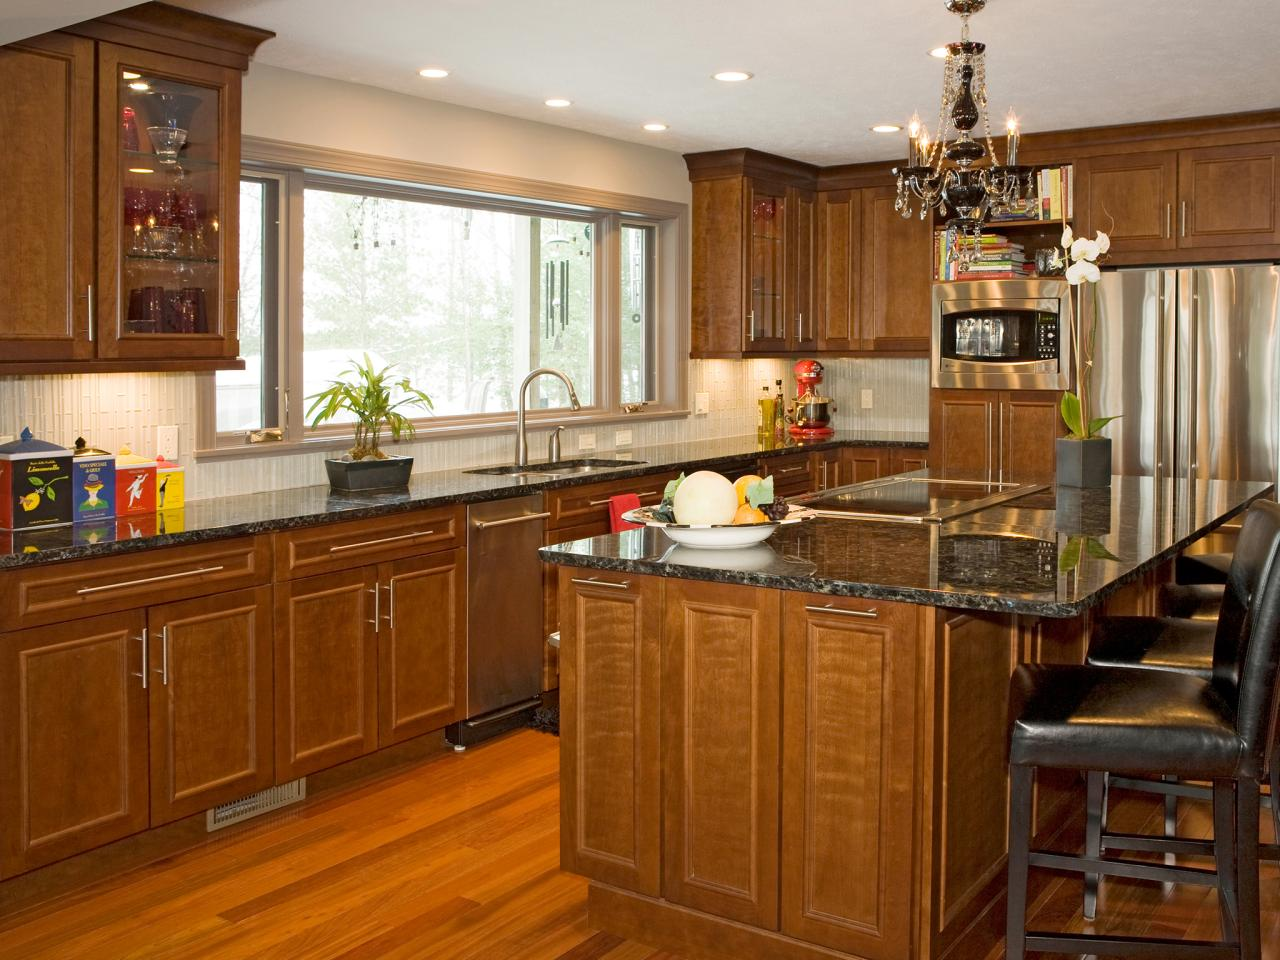 Kitchen Cabinet Design Ideas Kitchen Cabinet Design Ideas Pictures Options Tips & Ideas  Hgtv